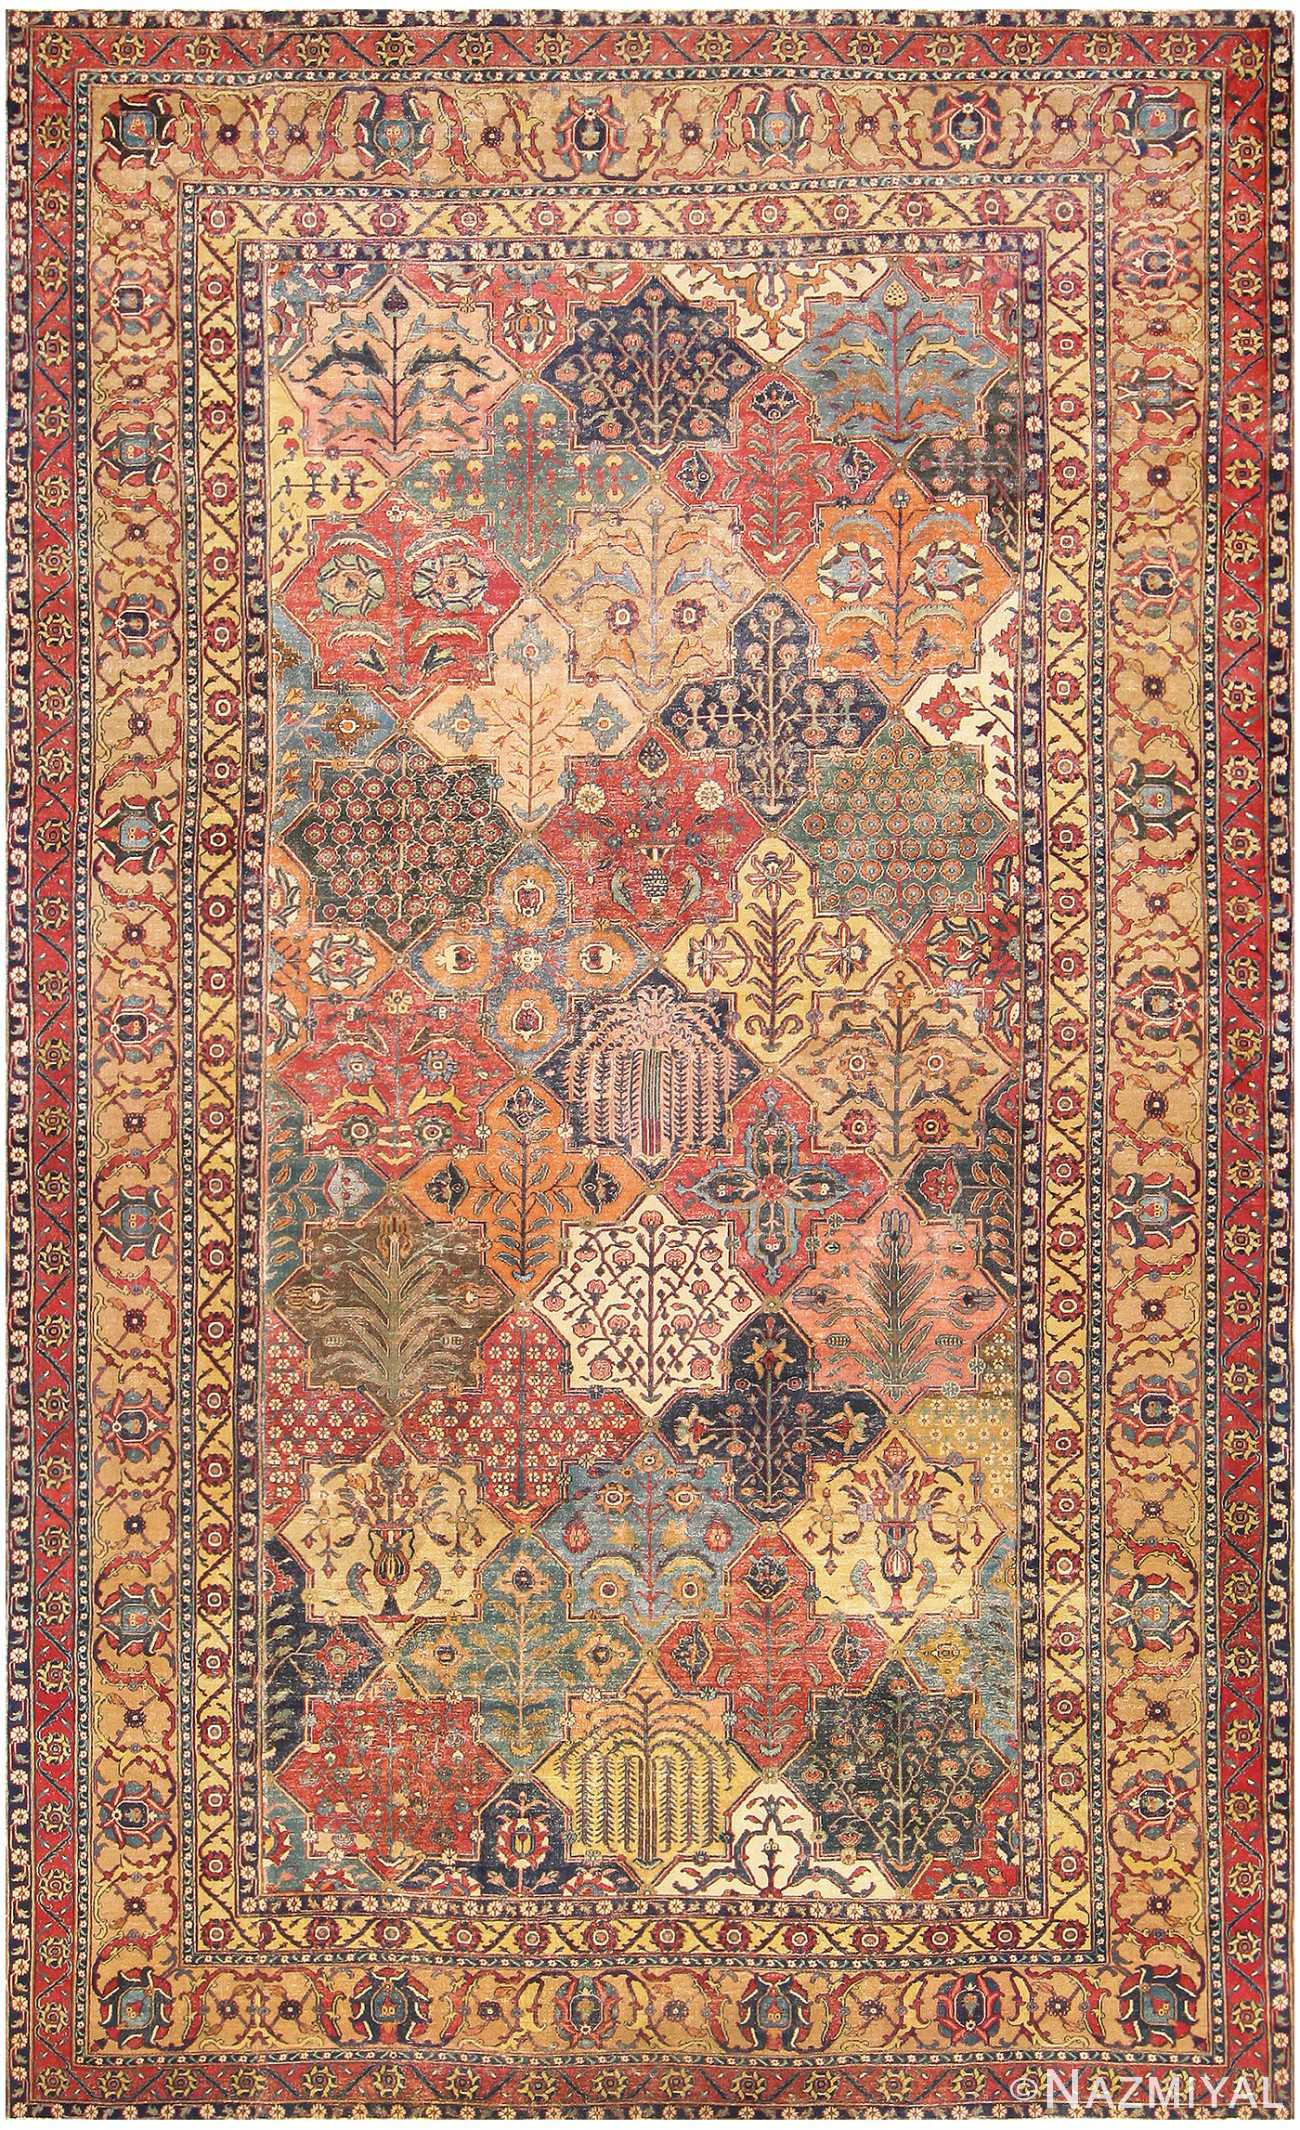 Antique Persian Khorassan Carpet 47074 by Nazmiyal Collection